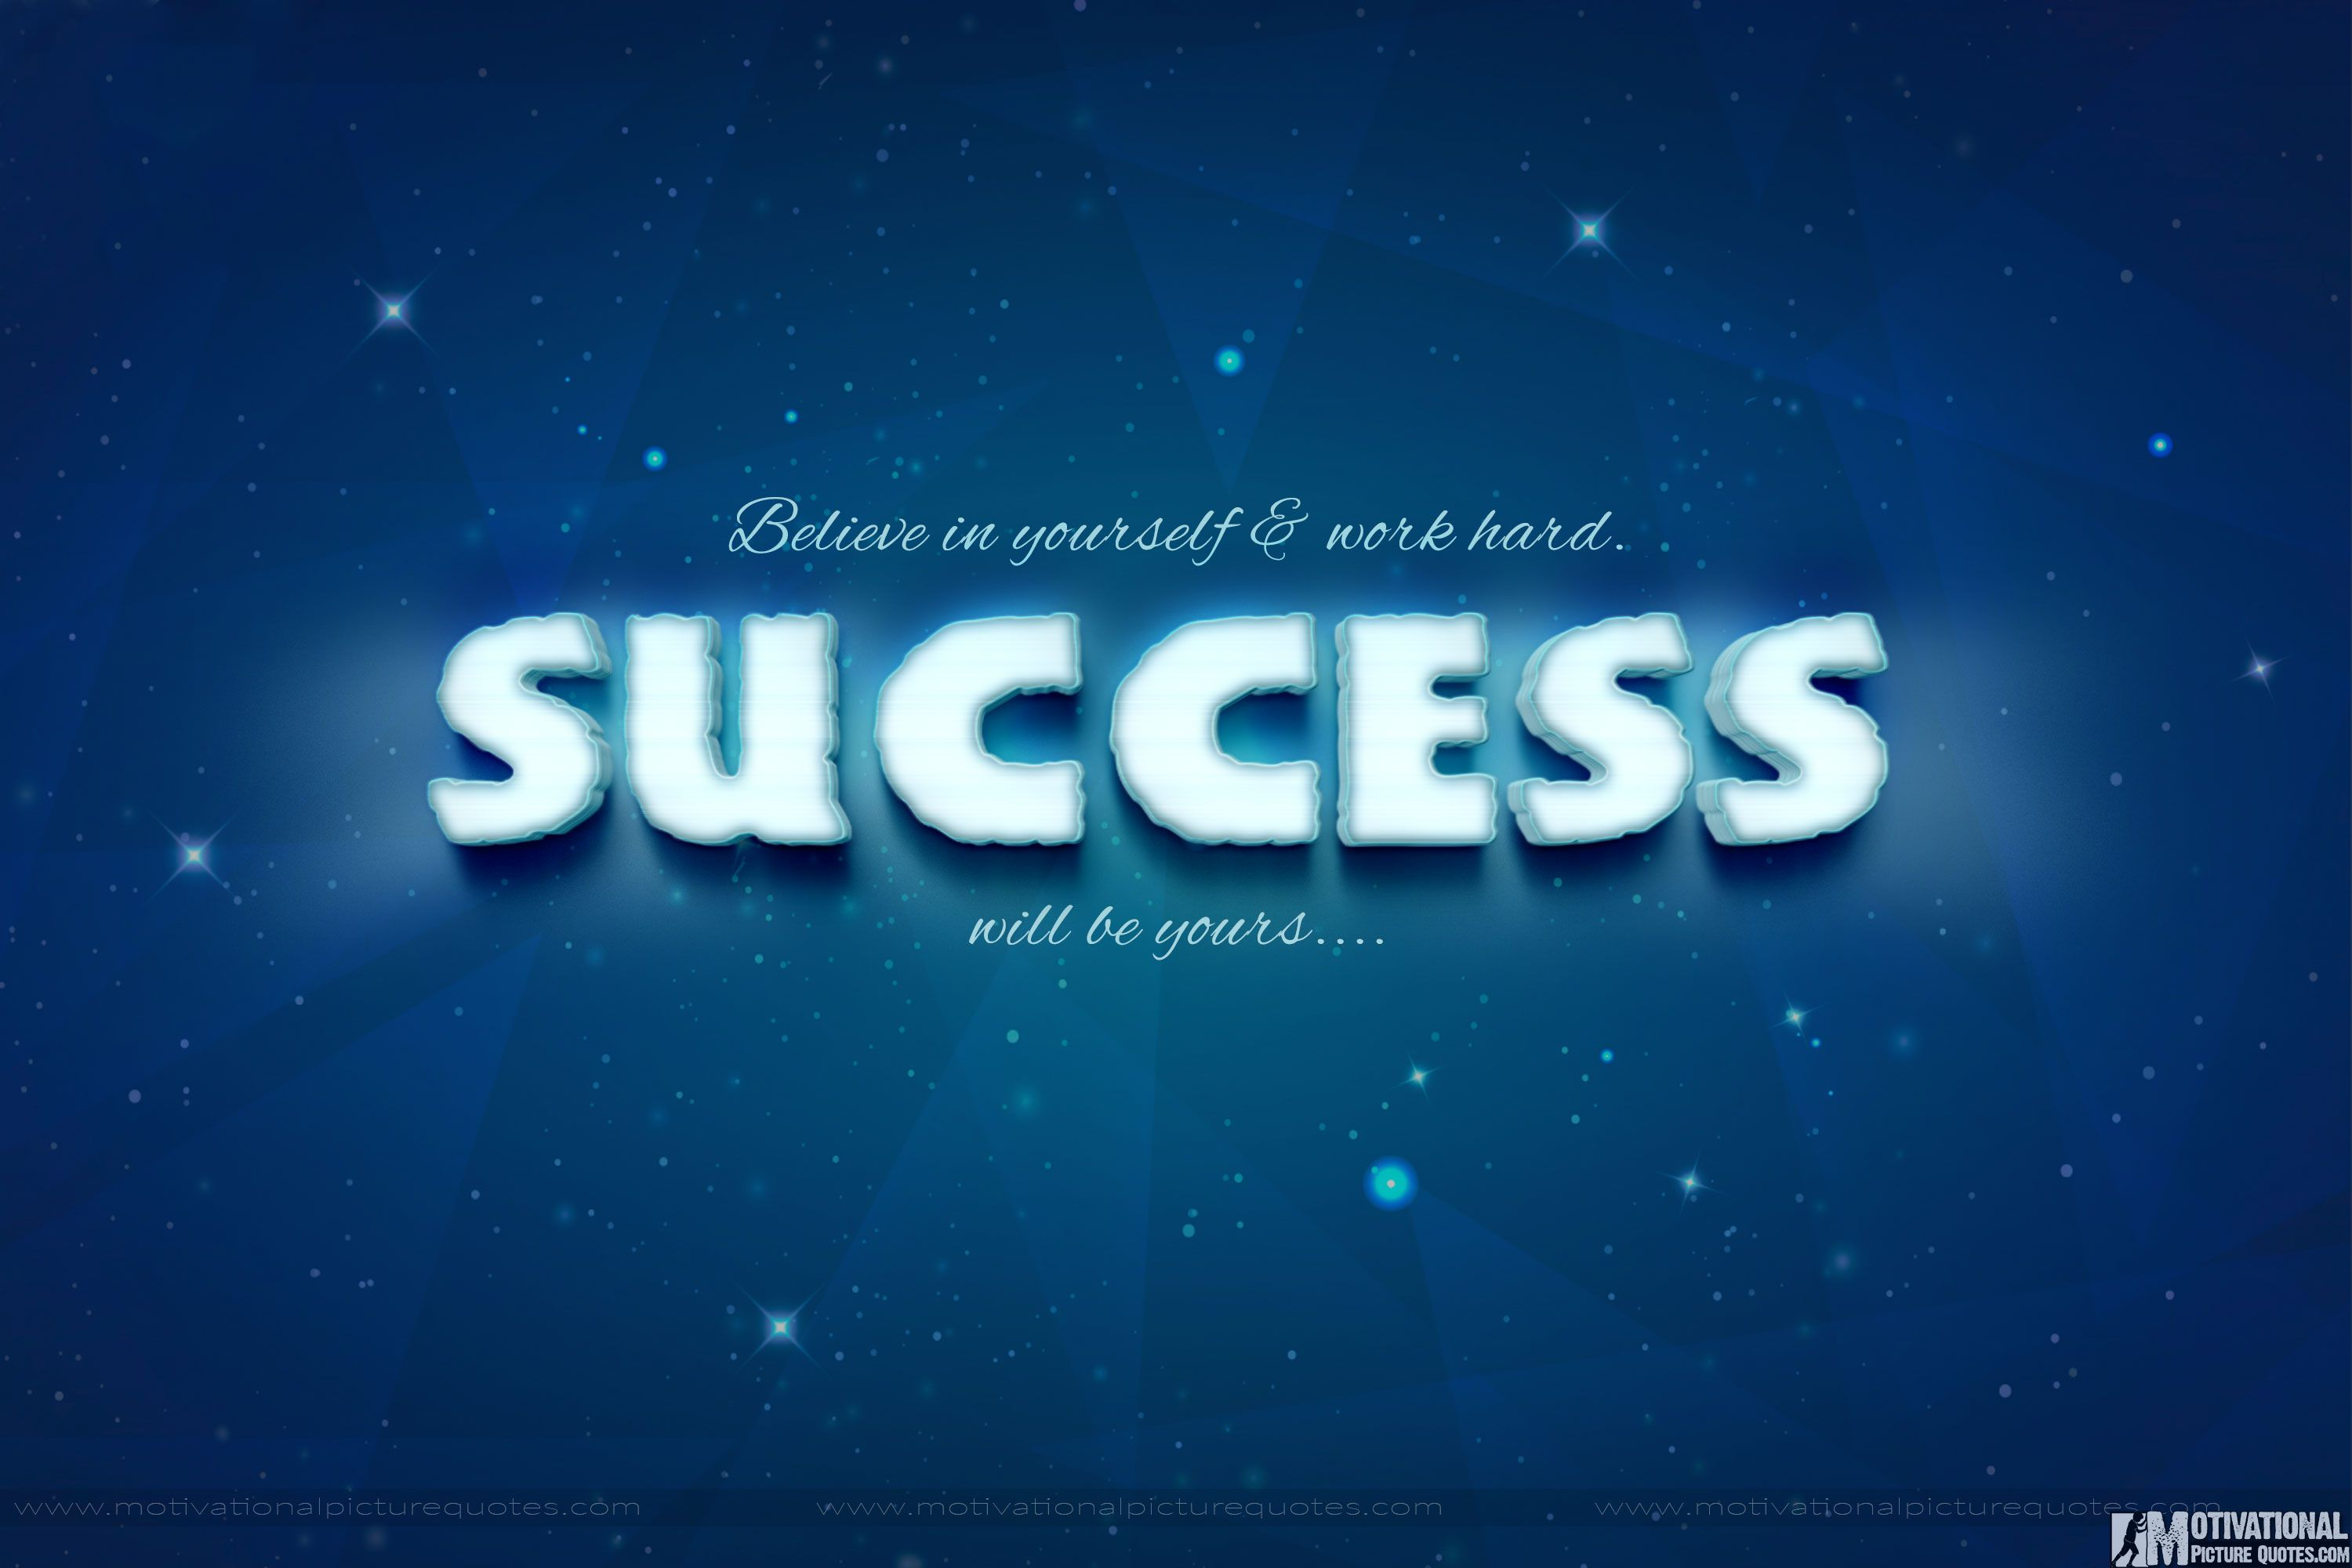 free best success wallpaper hd for your desktop laptop